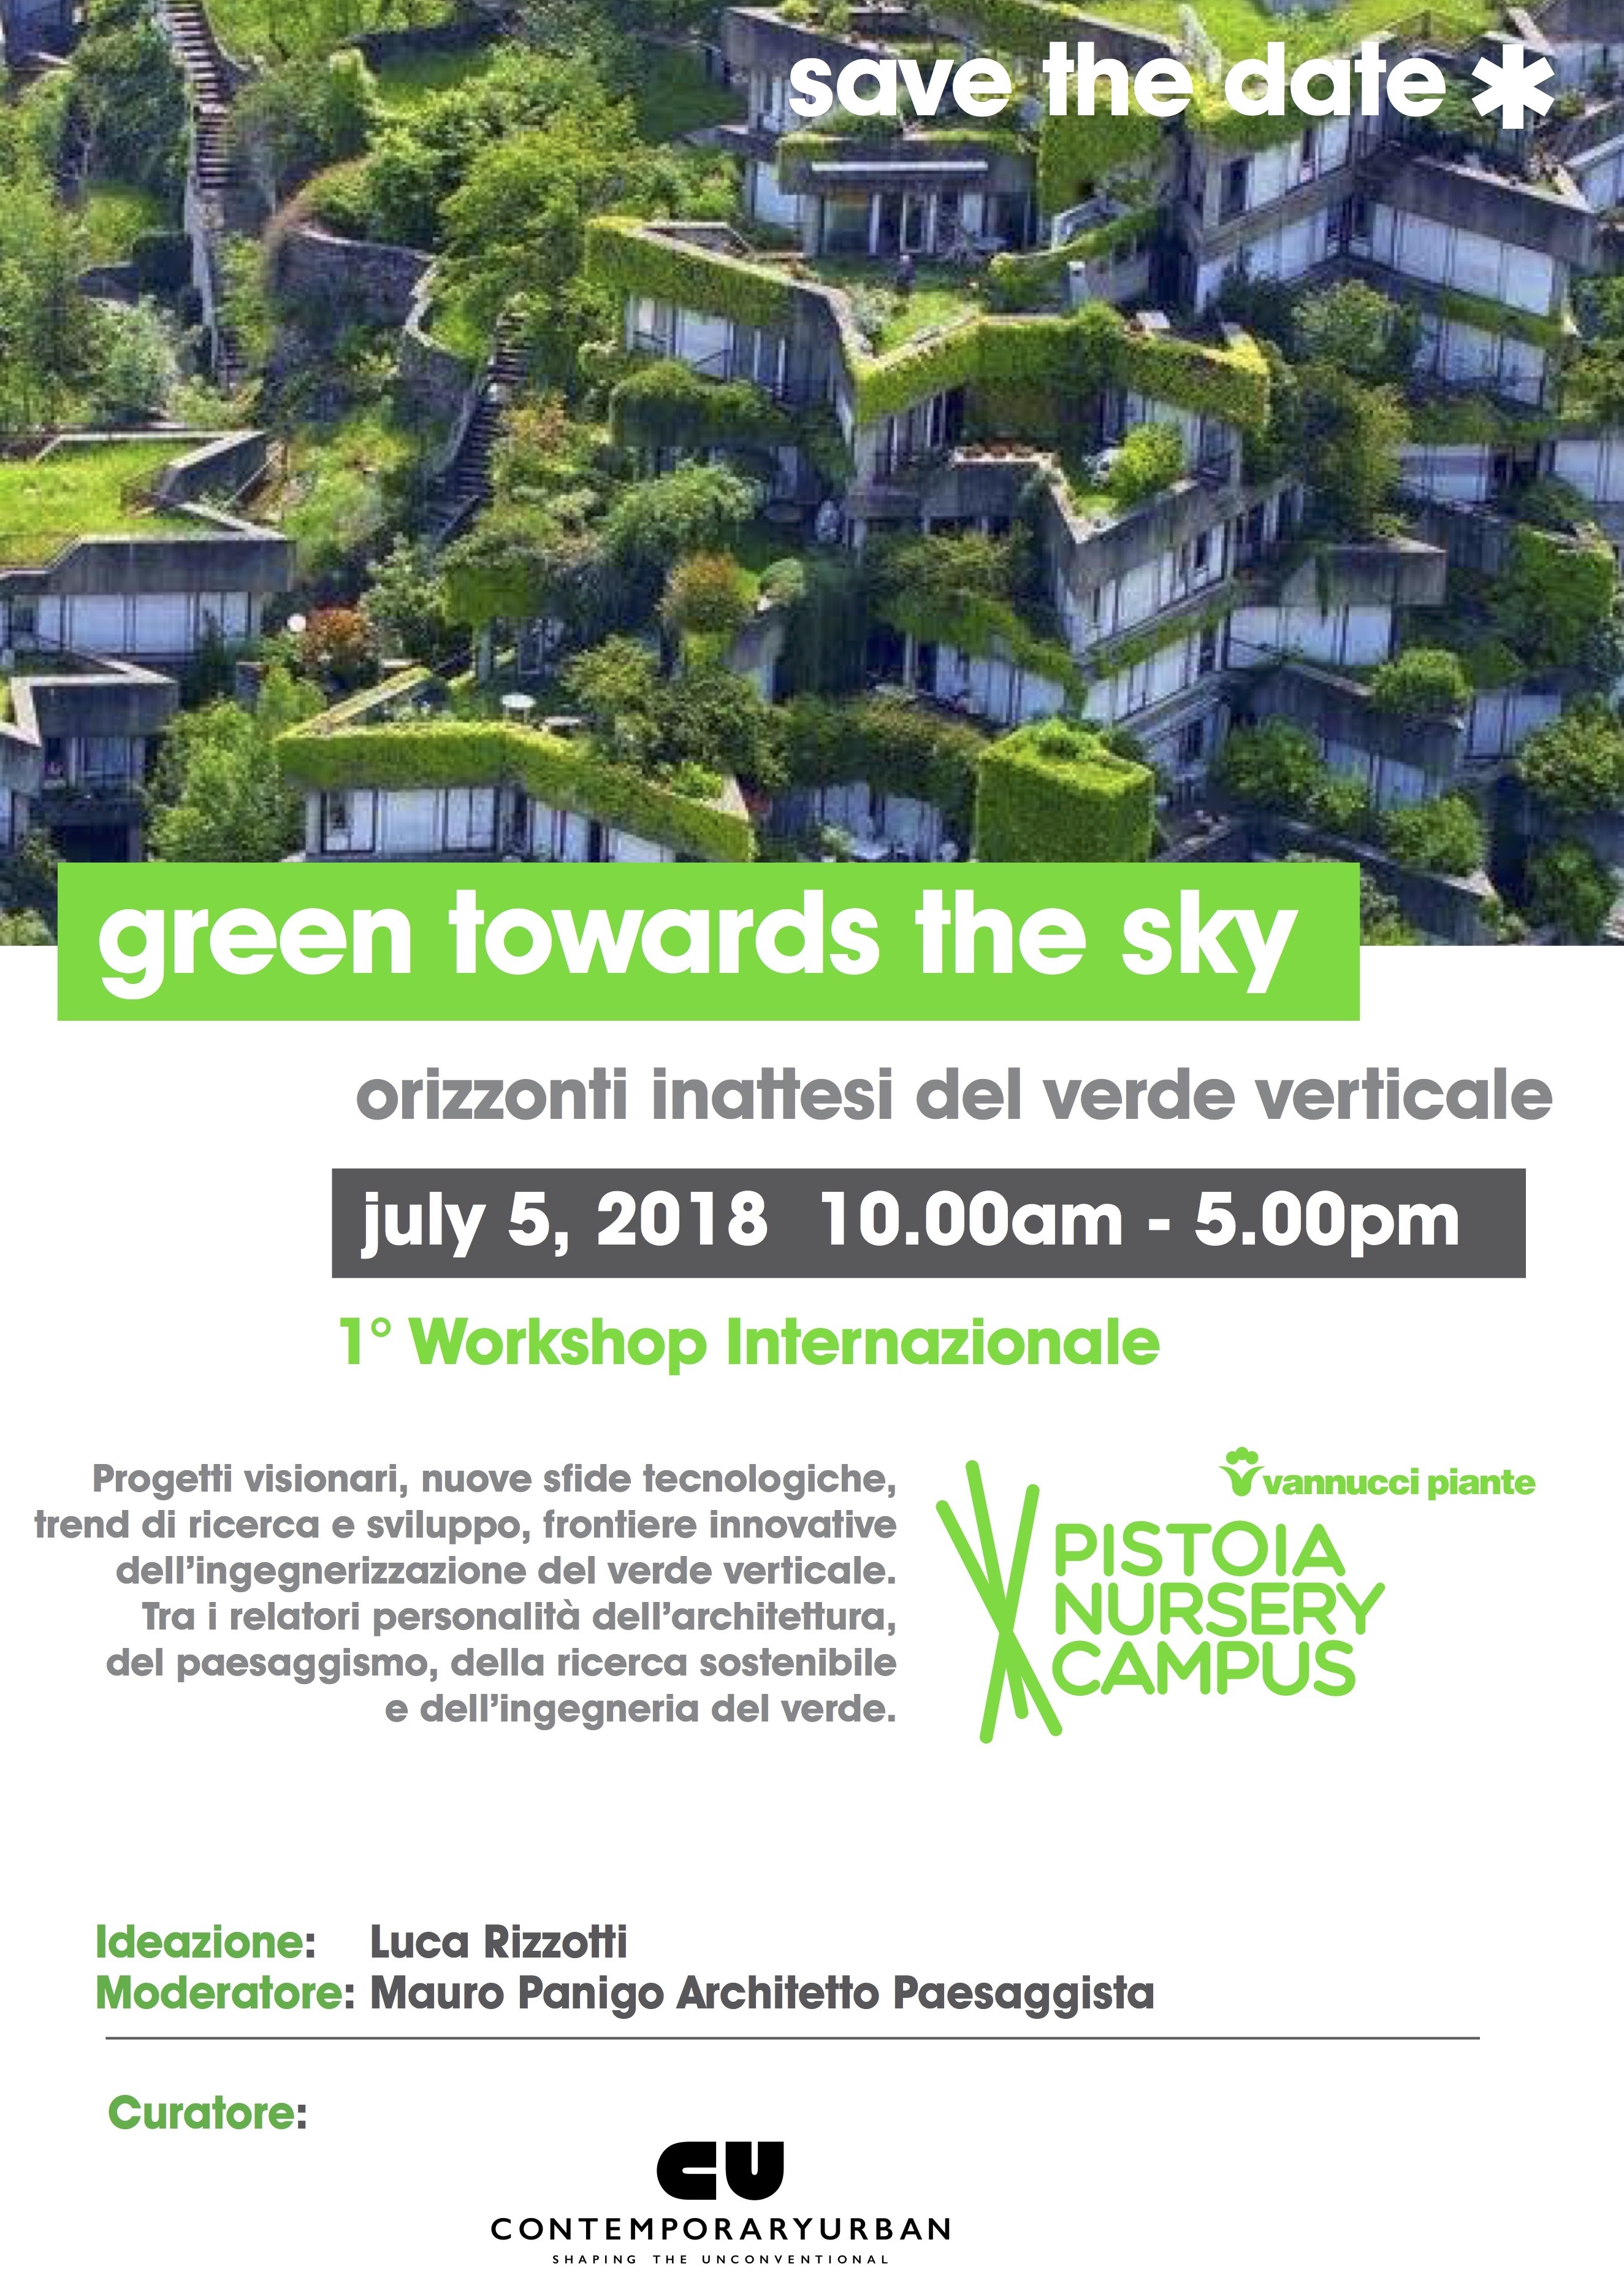 GREEN TOWARDS THE SKY > 1st INTERNATIONAL WORKSHOP ON THE VERTICAL & ROOF GREEN